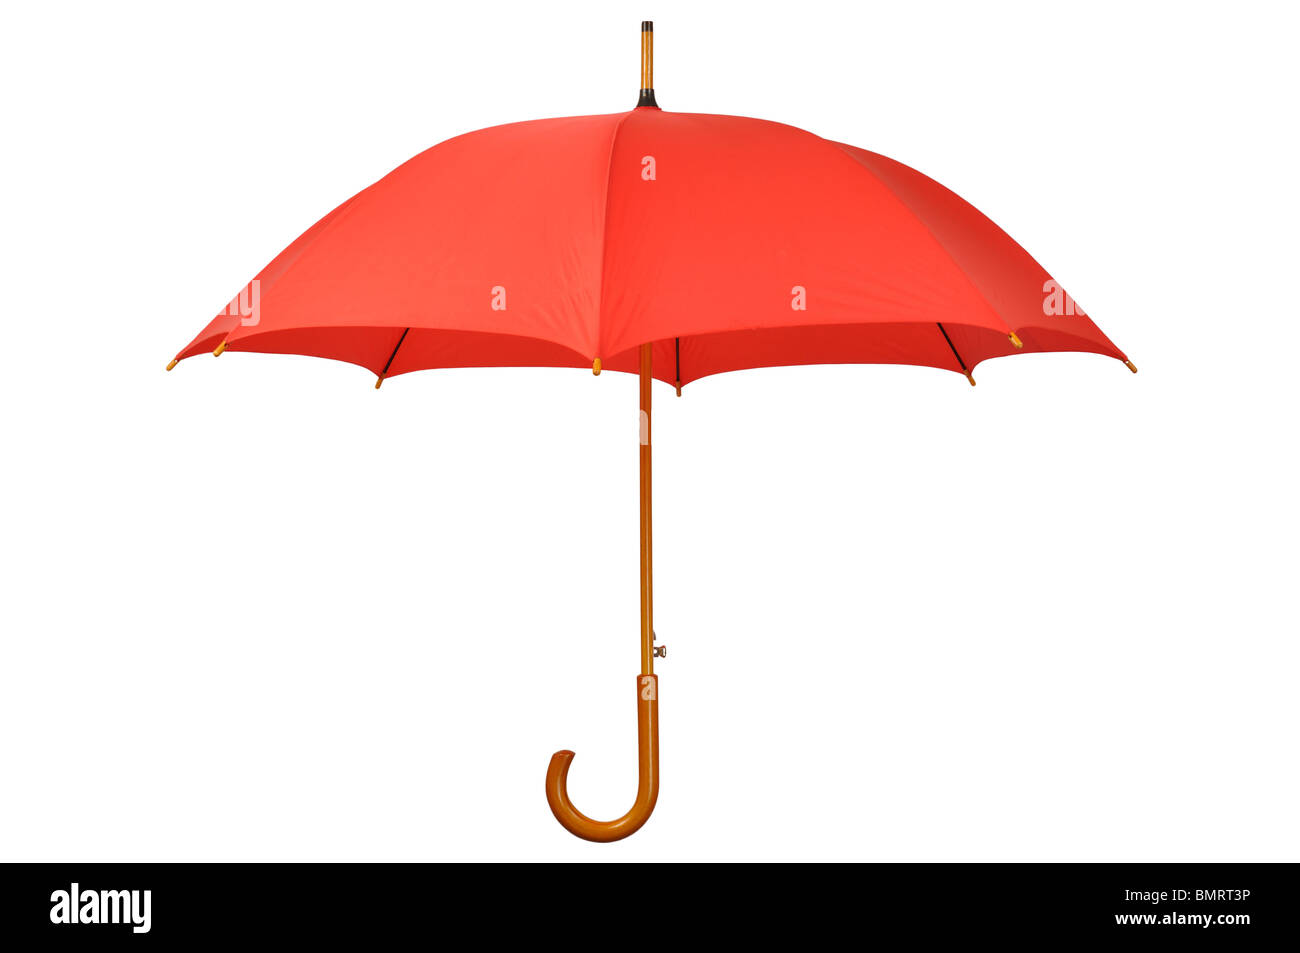 Red Umbrella - Stock Image